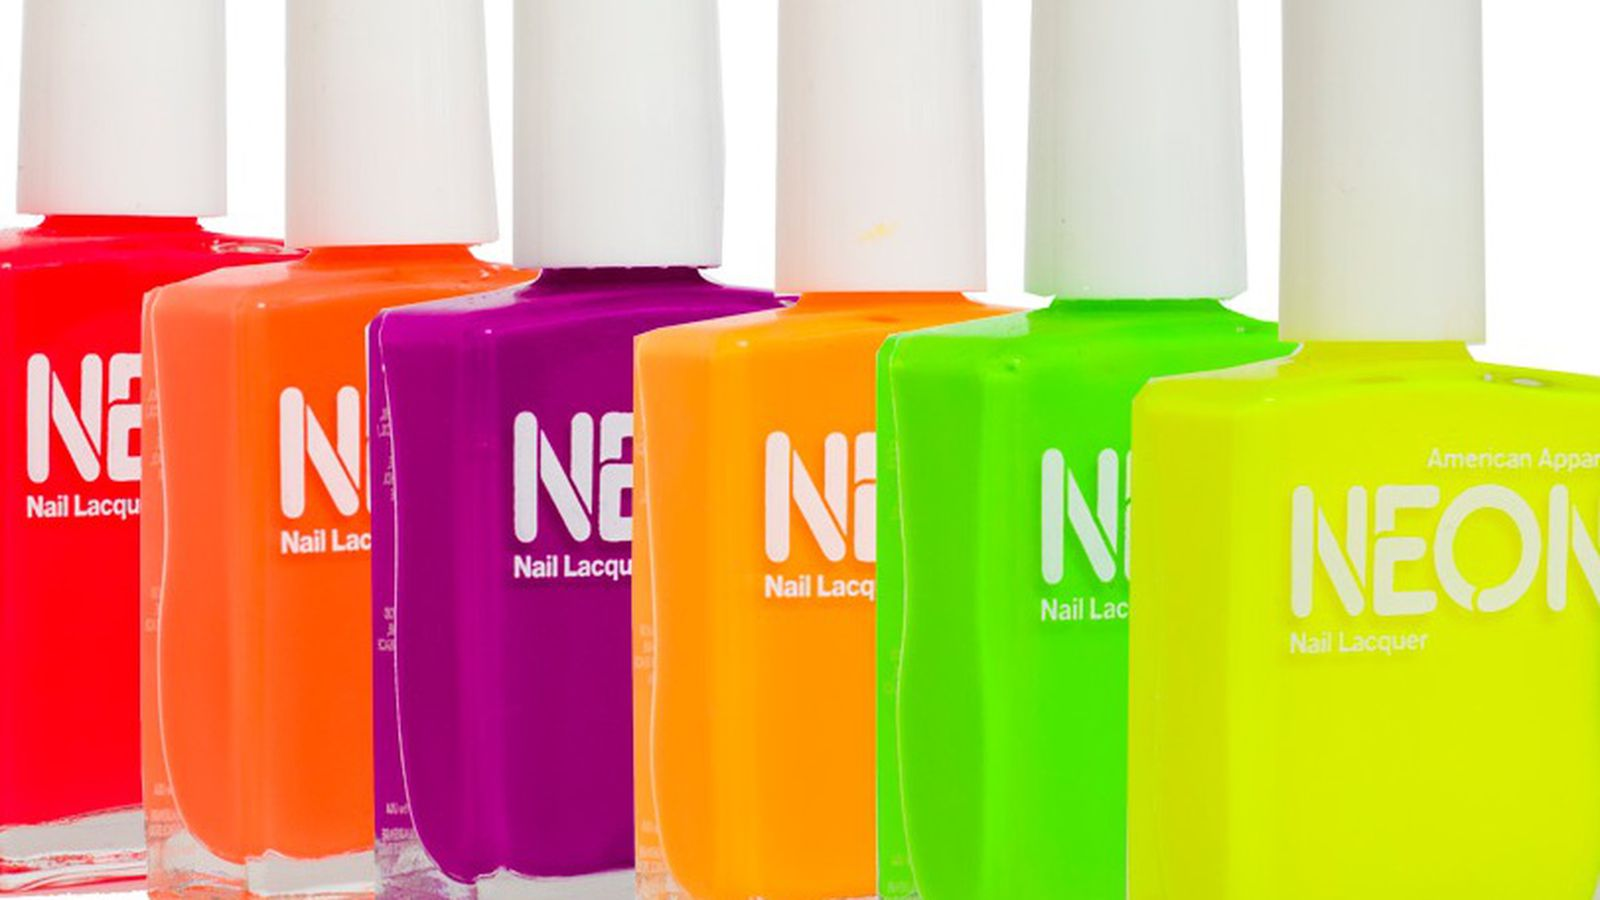 So This Is Why Neon Nail Polish Is Illegal in America